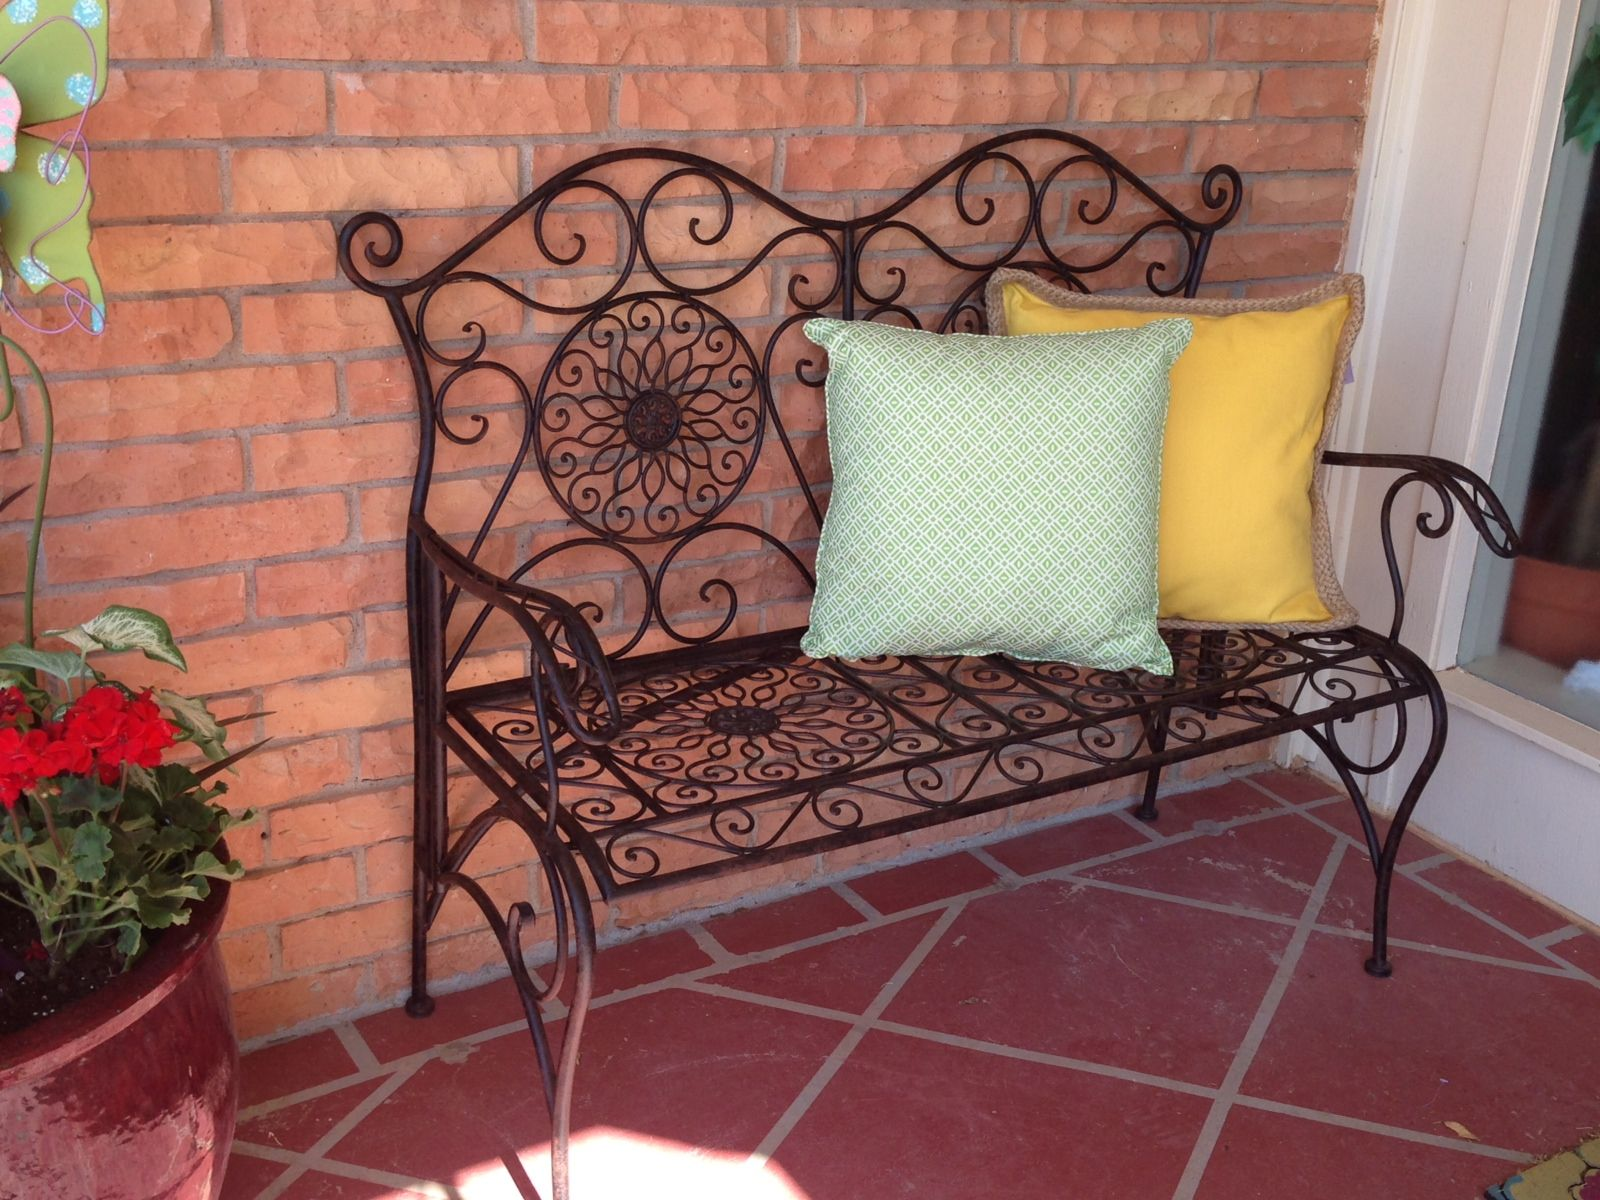 Hobby Lobby Benches | Iron Bench Adds Seating And Completes The Outdoor Room